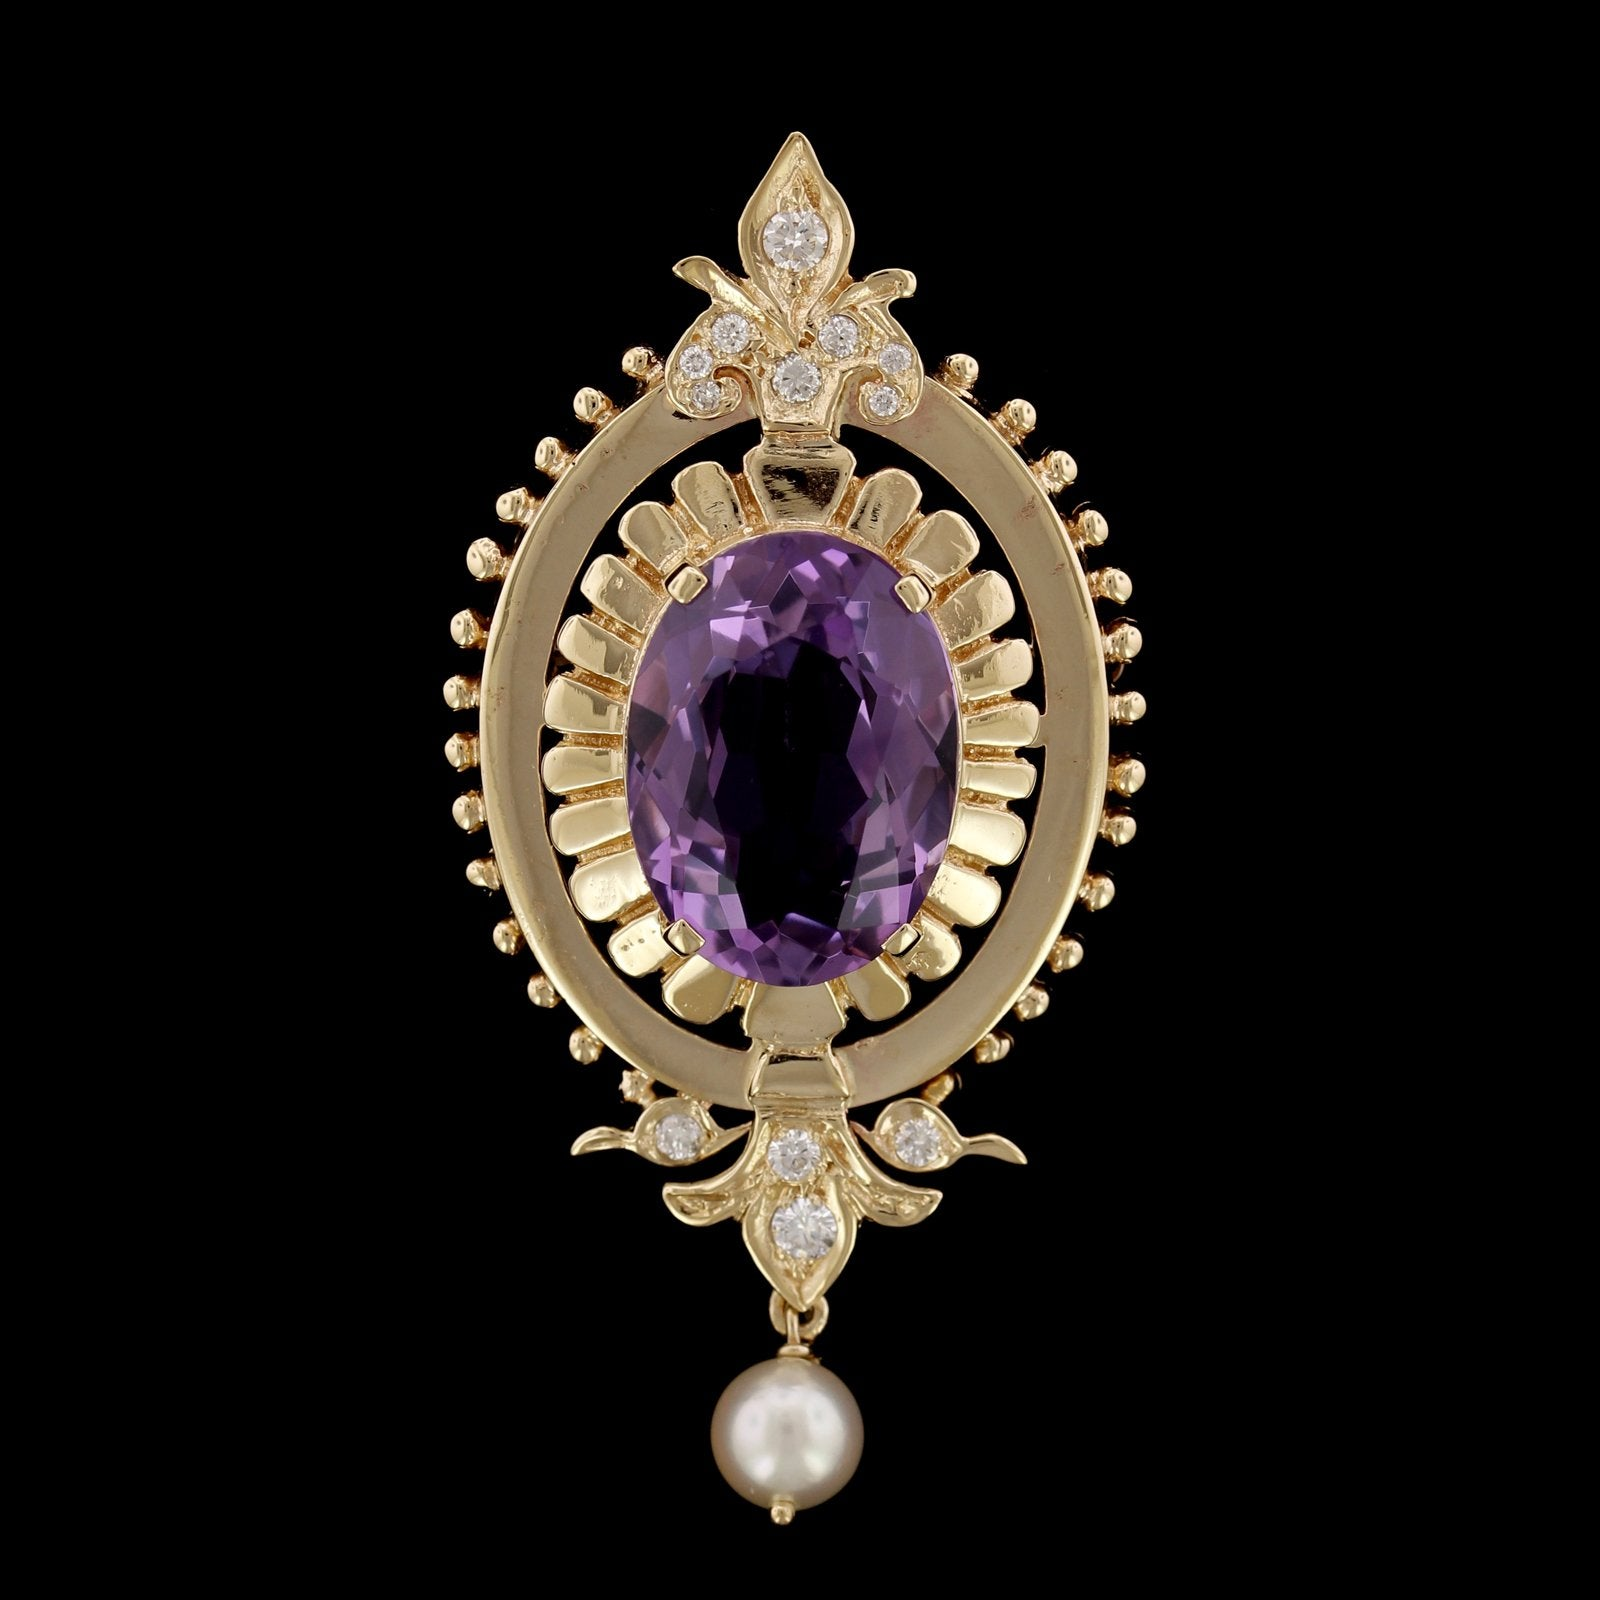 14K Yellow Gold Estate Amethyst, Cultured Pearl and Diamond Pin/Pendant